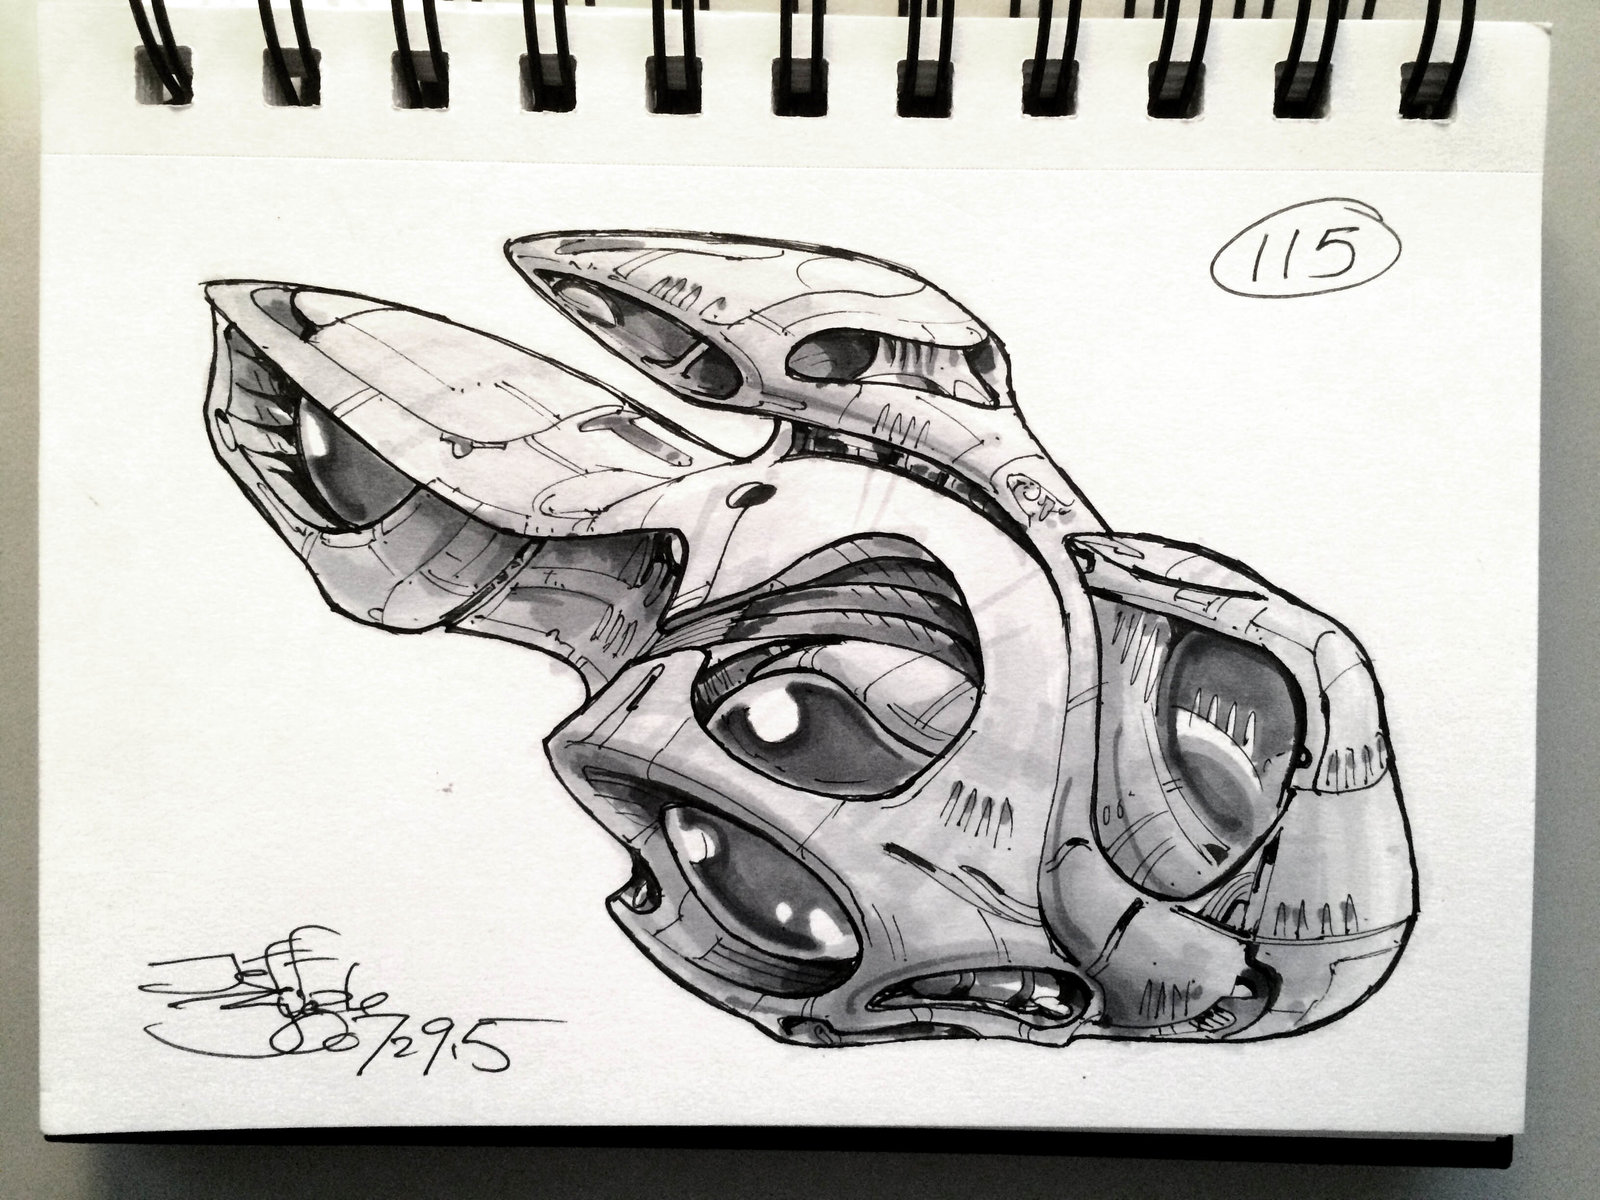 SpaceshipADay 115